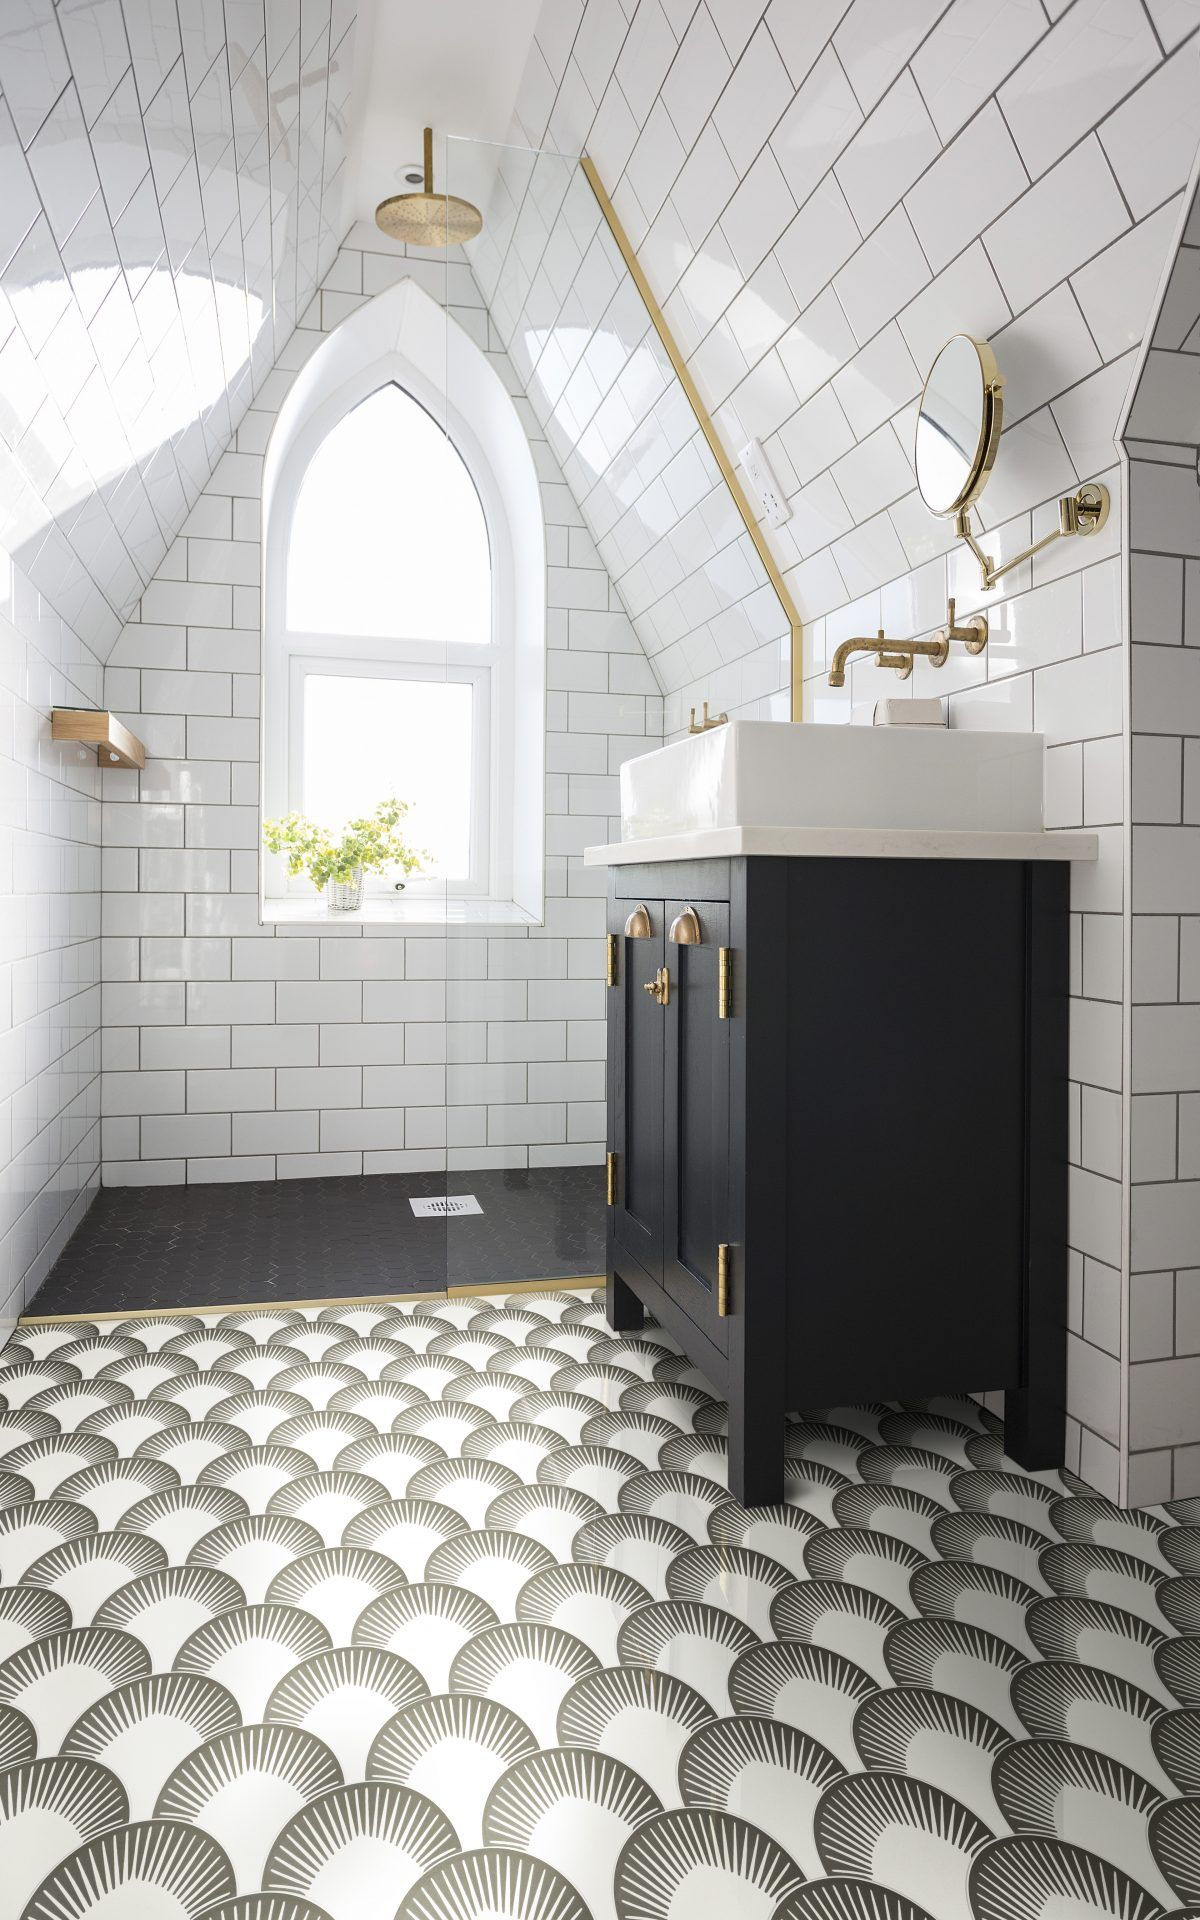 Vaulted Ceiling And Arched Window Make This Shower Space So Dreamy The Tiles And Dark Sink Unit Pull It All Togethe Attic Renovation Attic Remodel Attic Rooms